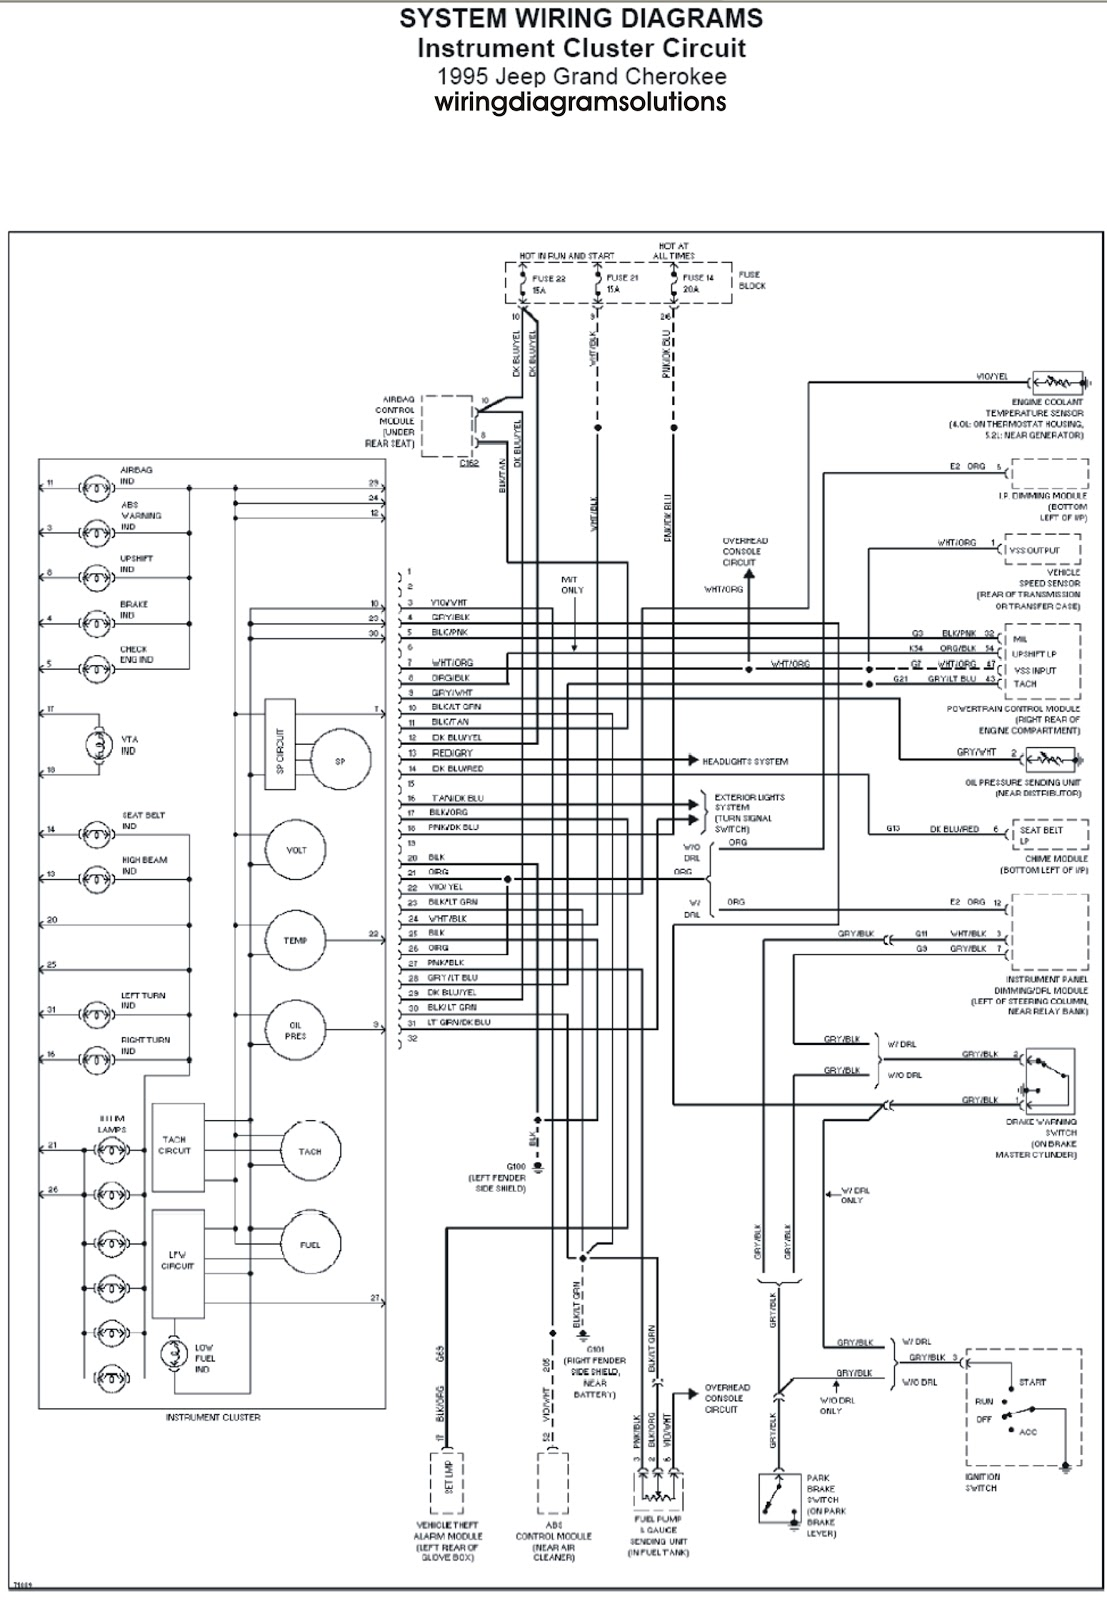 2004 Jeep Grand Cherokee Wiring Harness Diagram Just Wiring Data 2001 Jeep  Grand Cherokee Power Window Diagram 2004 Jeep Grand Cherokee Laredo Wiring  ...